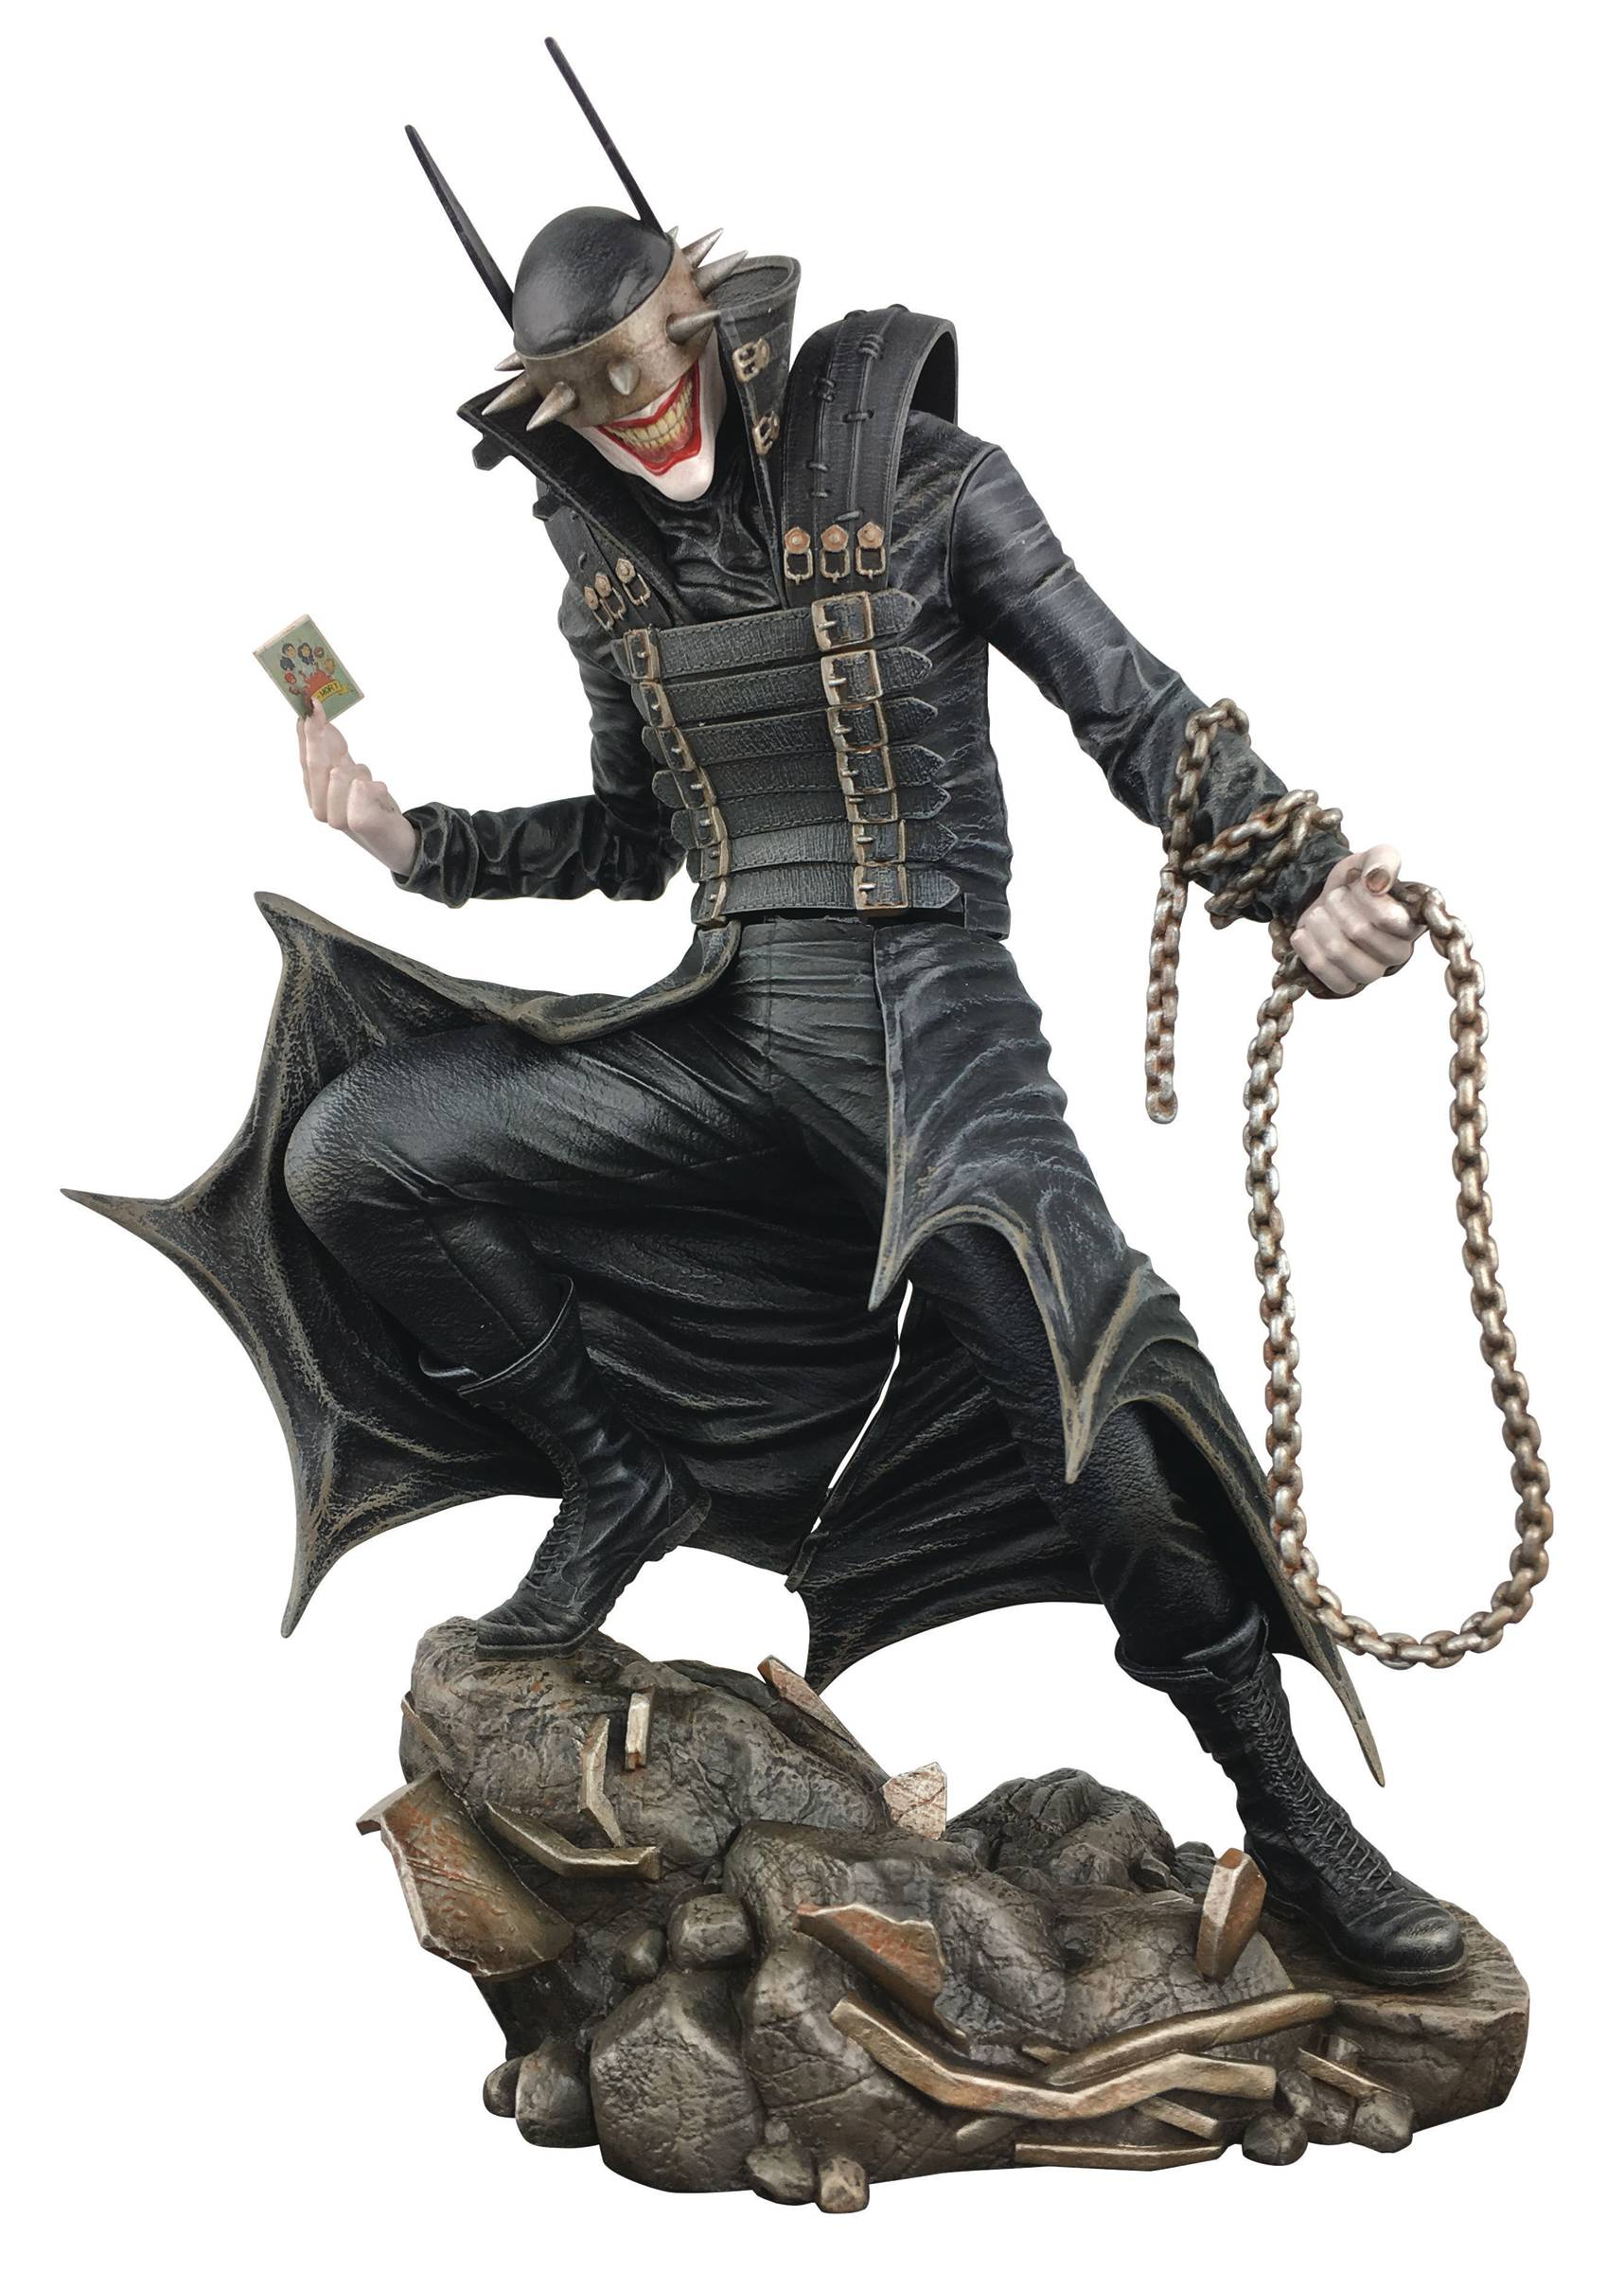 DC GALLERY BATMAN COMIC WHO LAUGHS PVC FIGURE